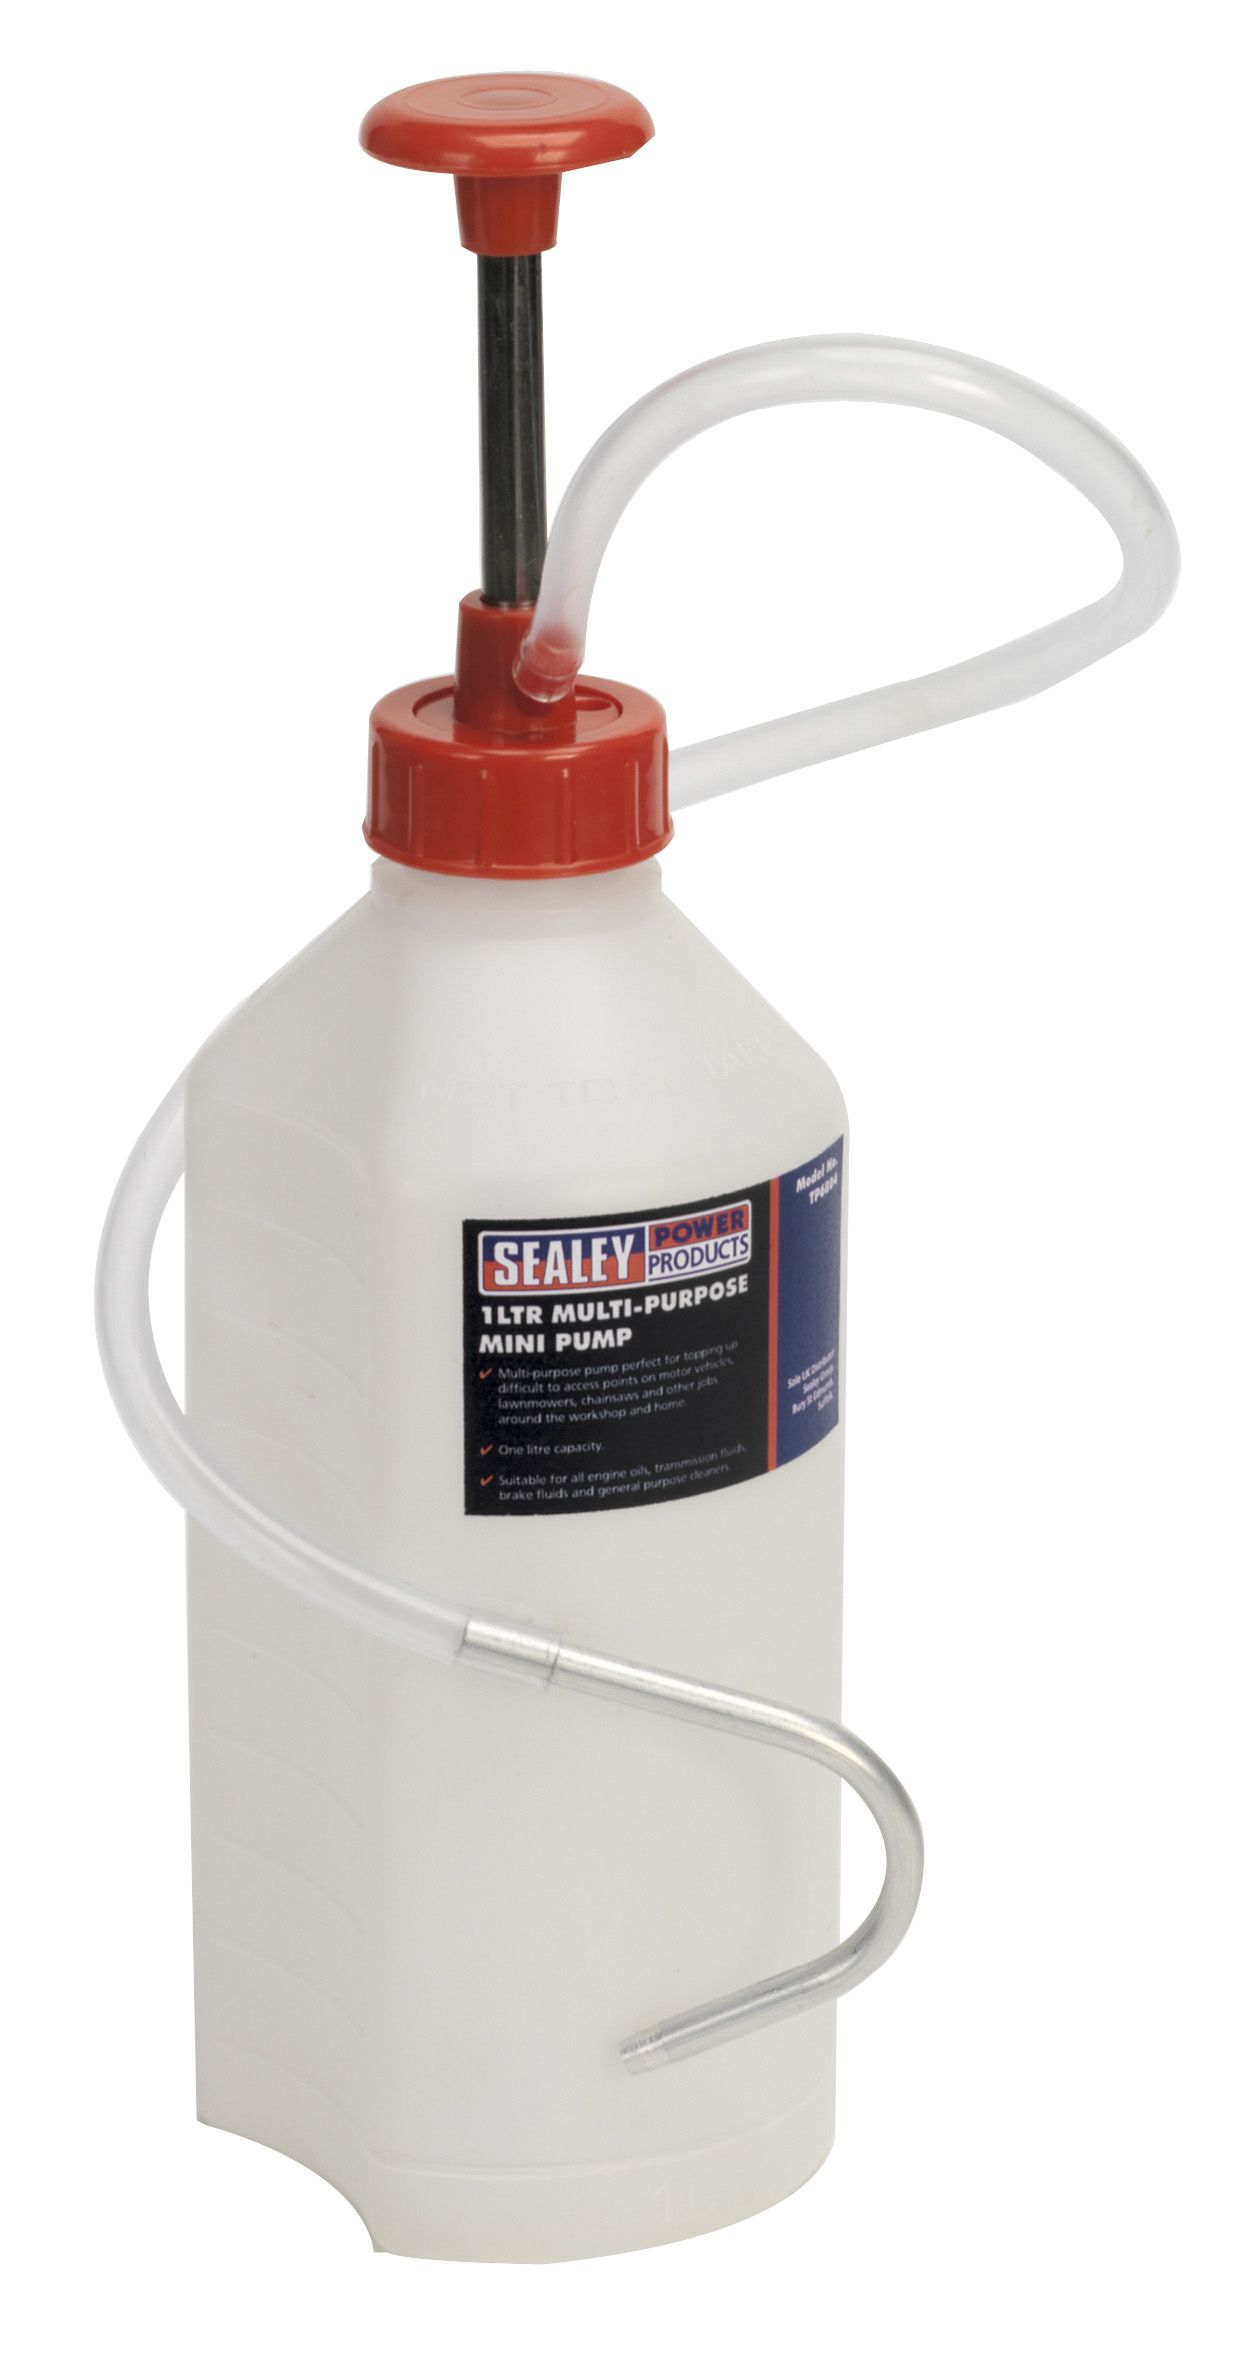 Sealey Multipurpose Mini Pump 1L